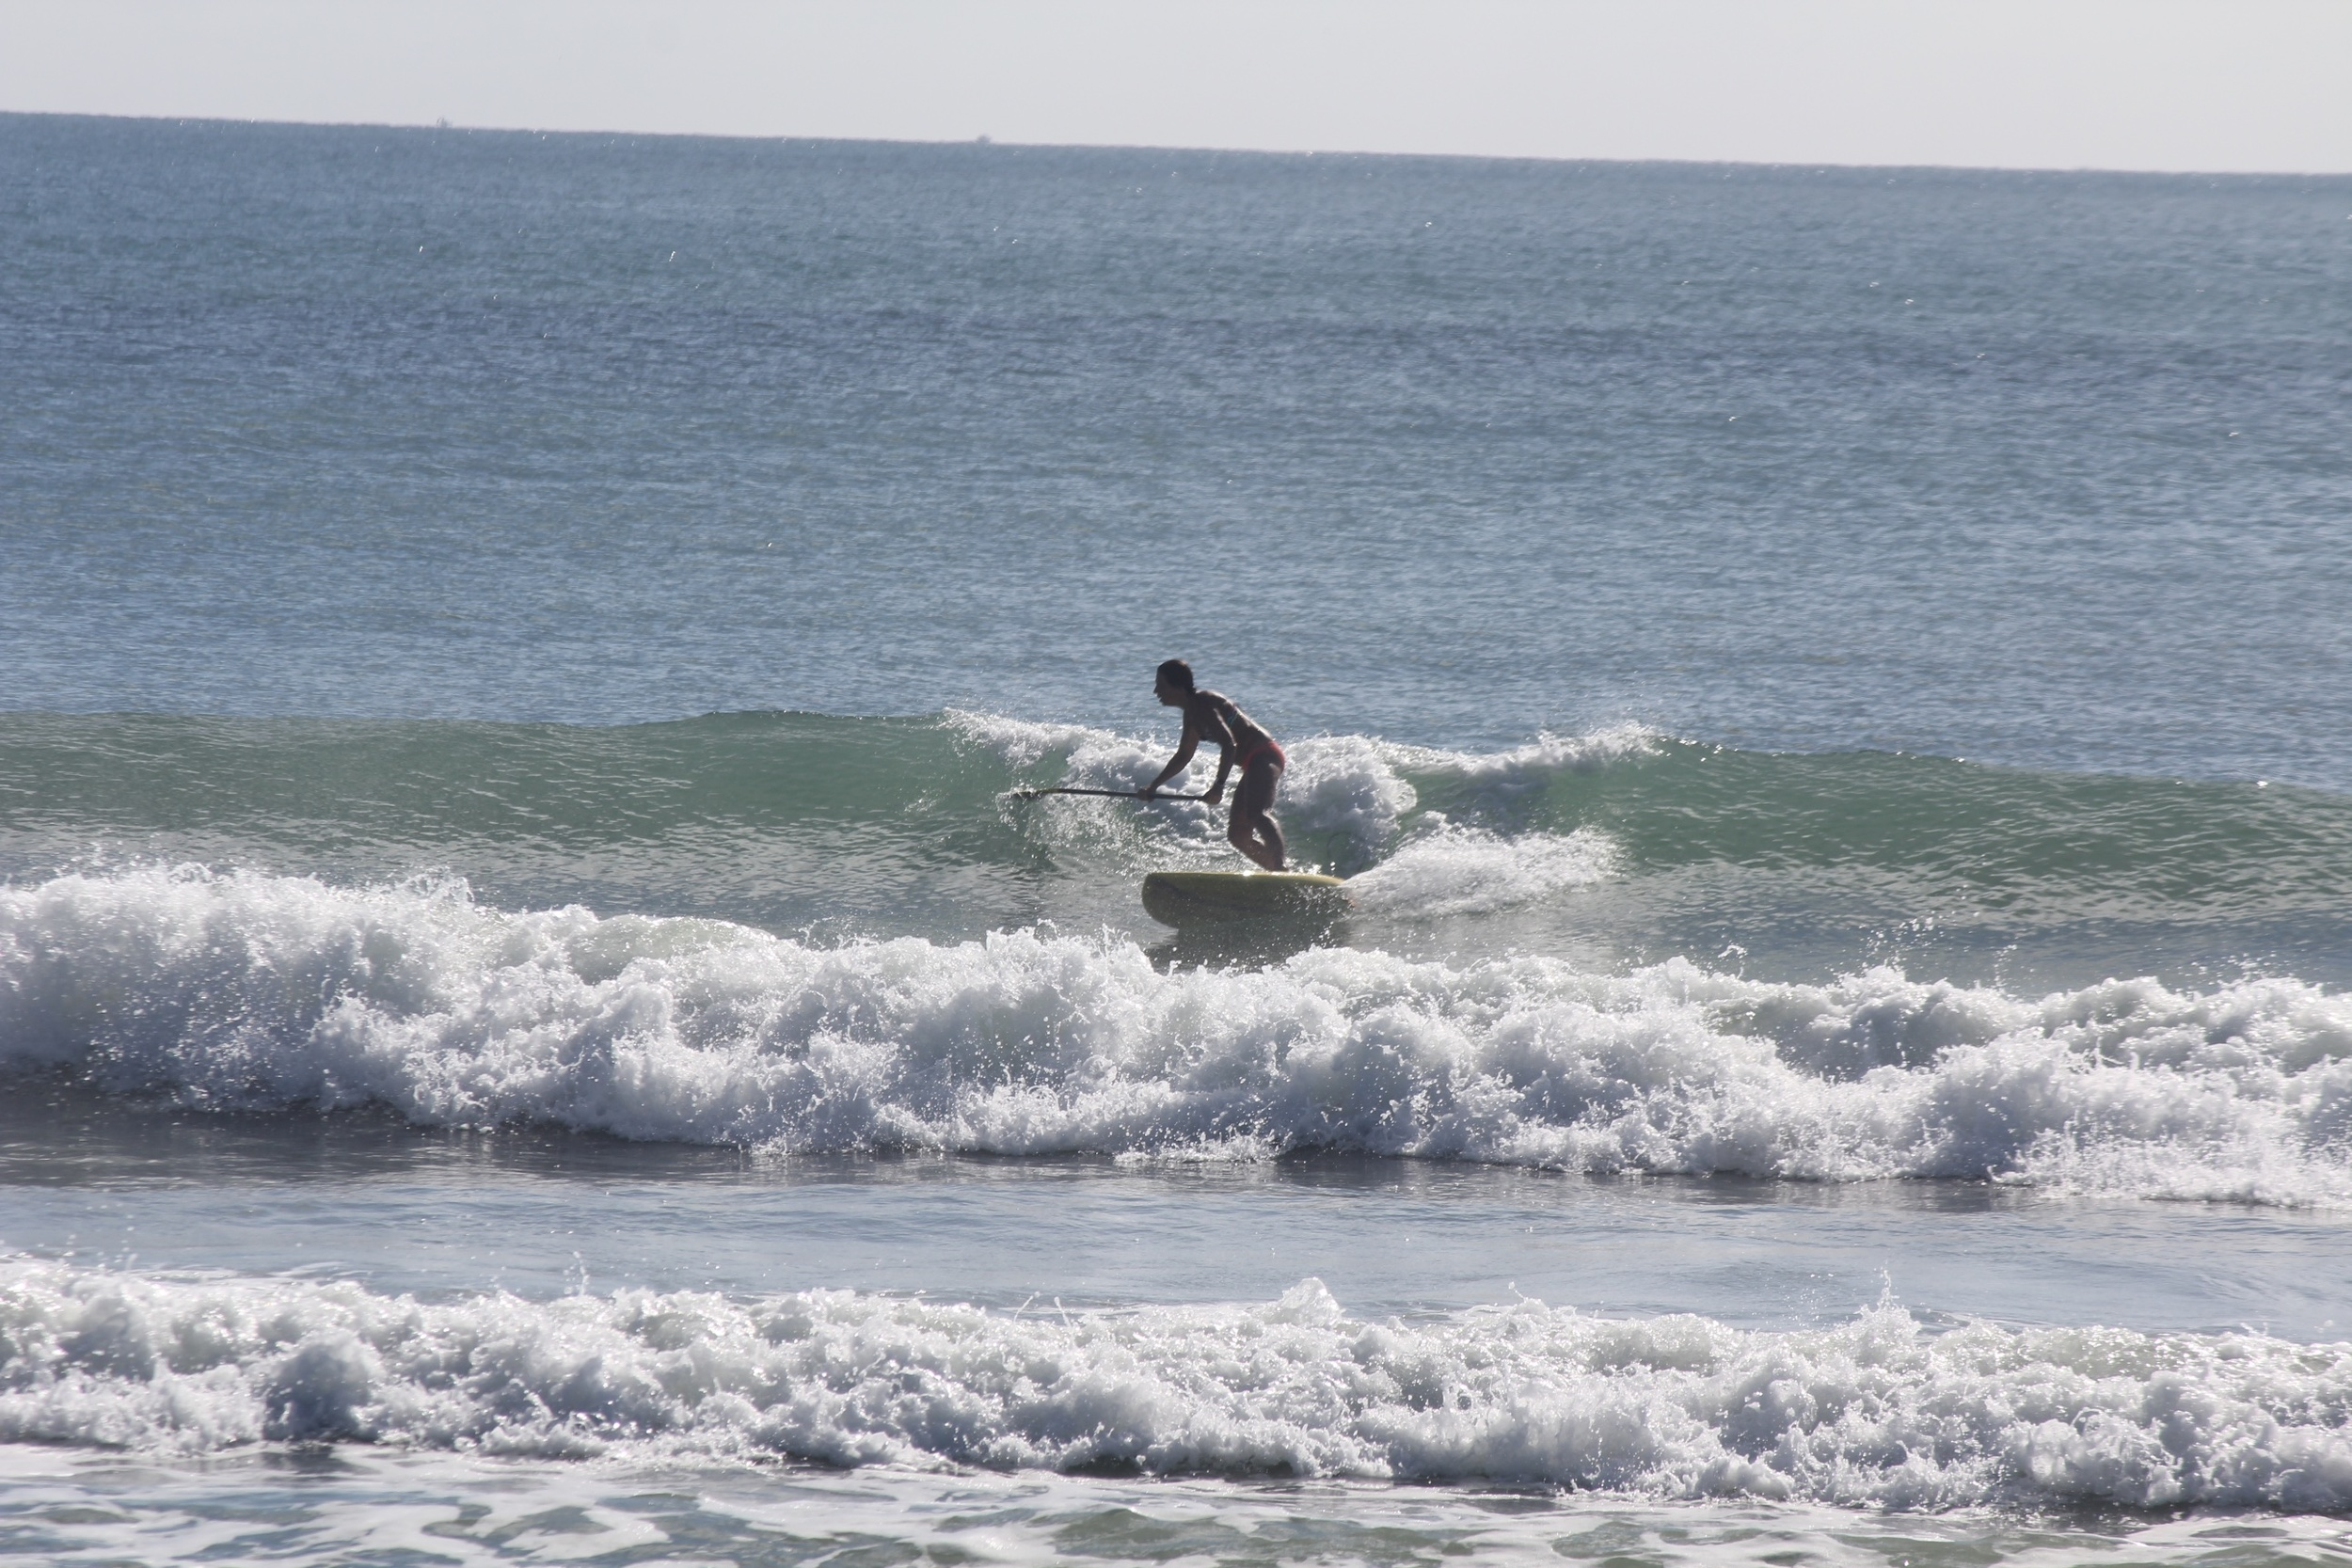 Jacky on her board today.